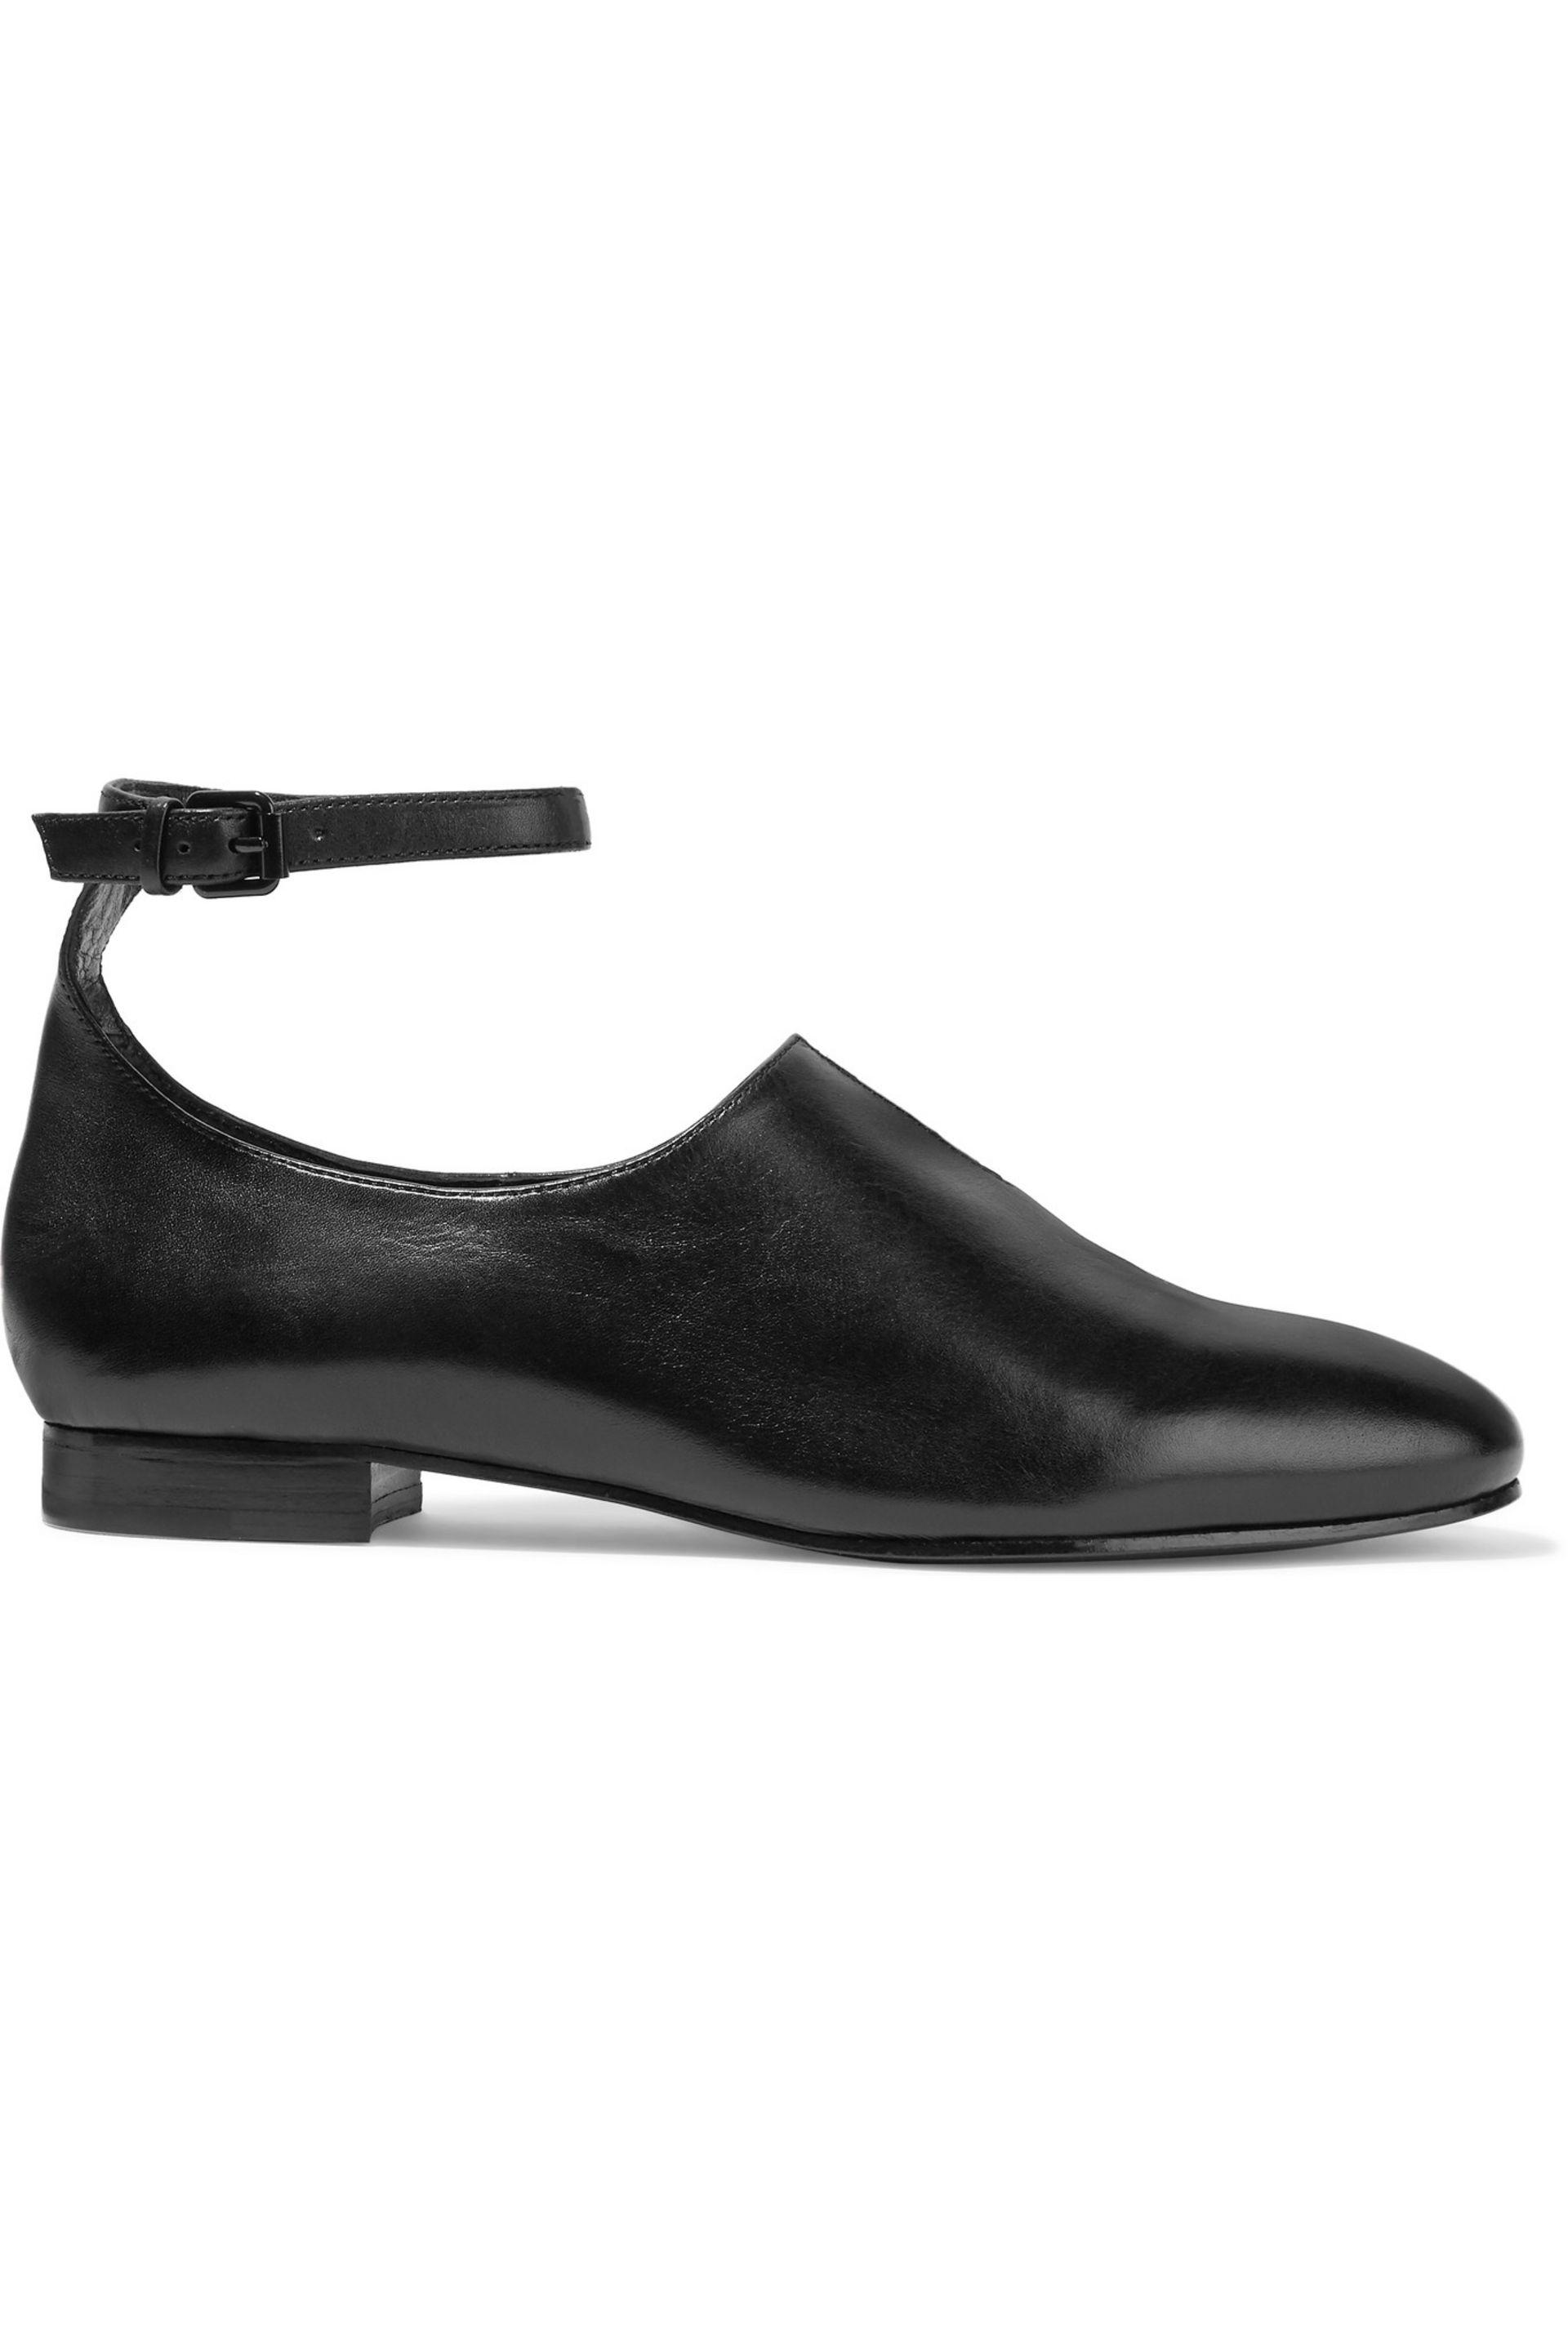 Opening Ceremony. Women's Black Norrah Cutout Leather Brogues